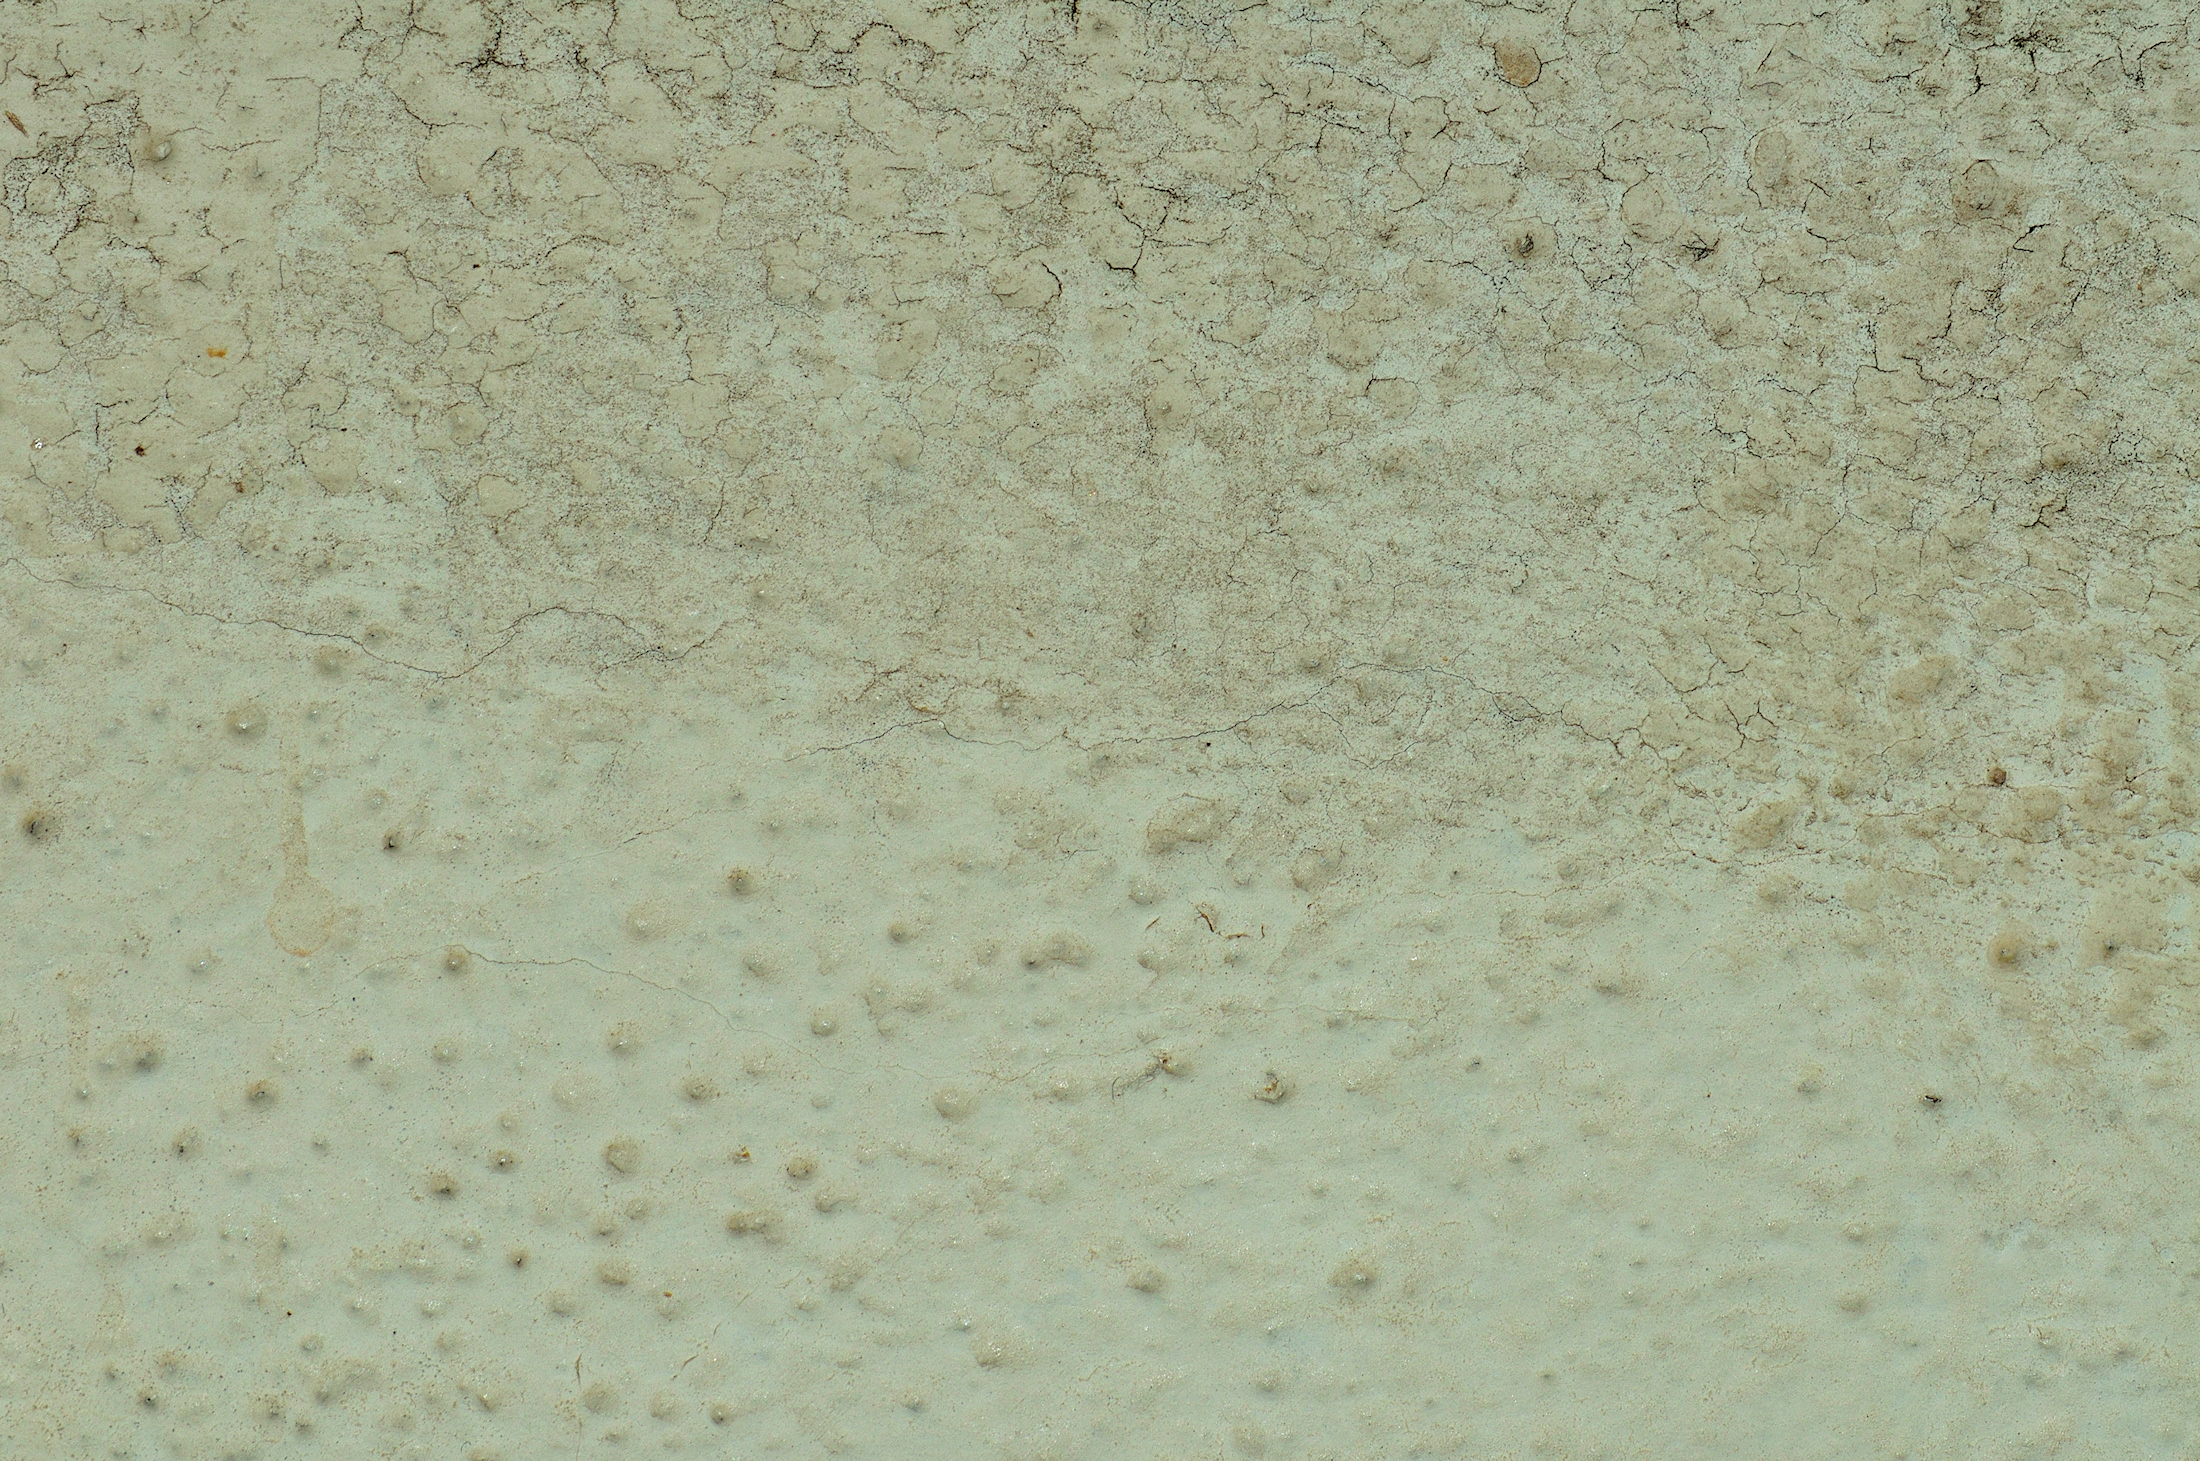 Cracked plaster, Plaster, Old, Scratched, Humidity, HQ Photo